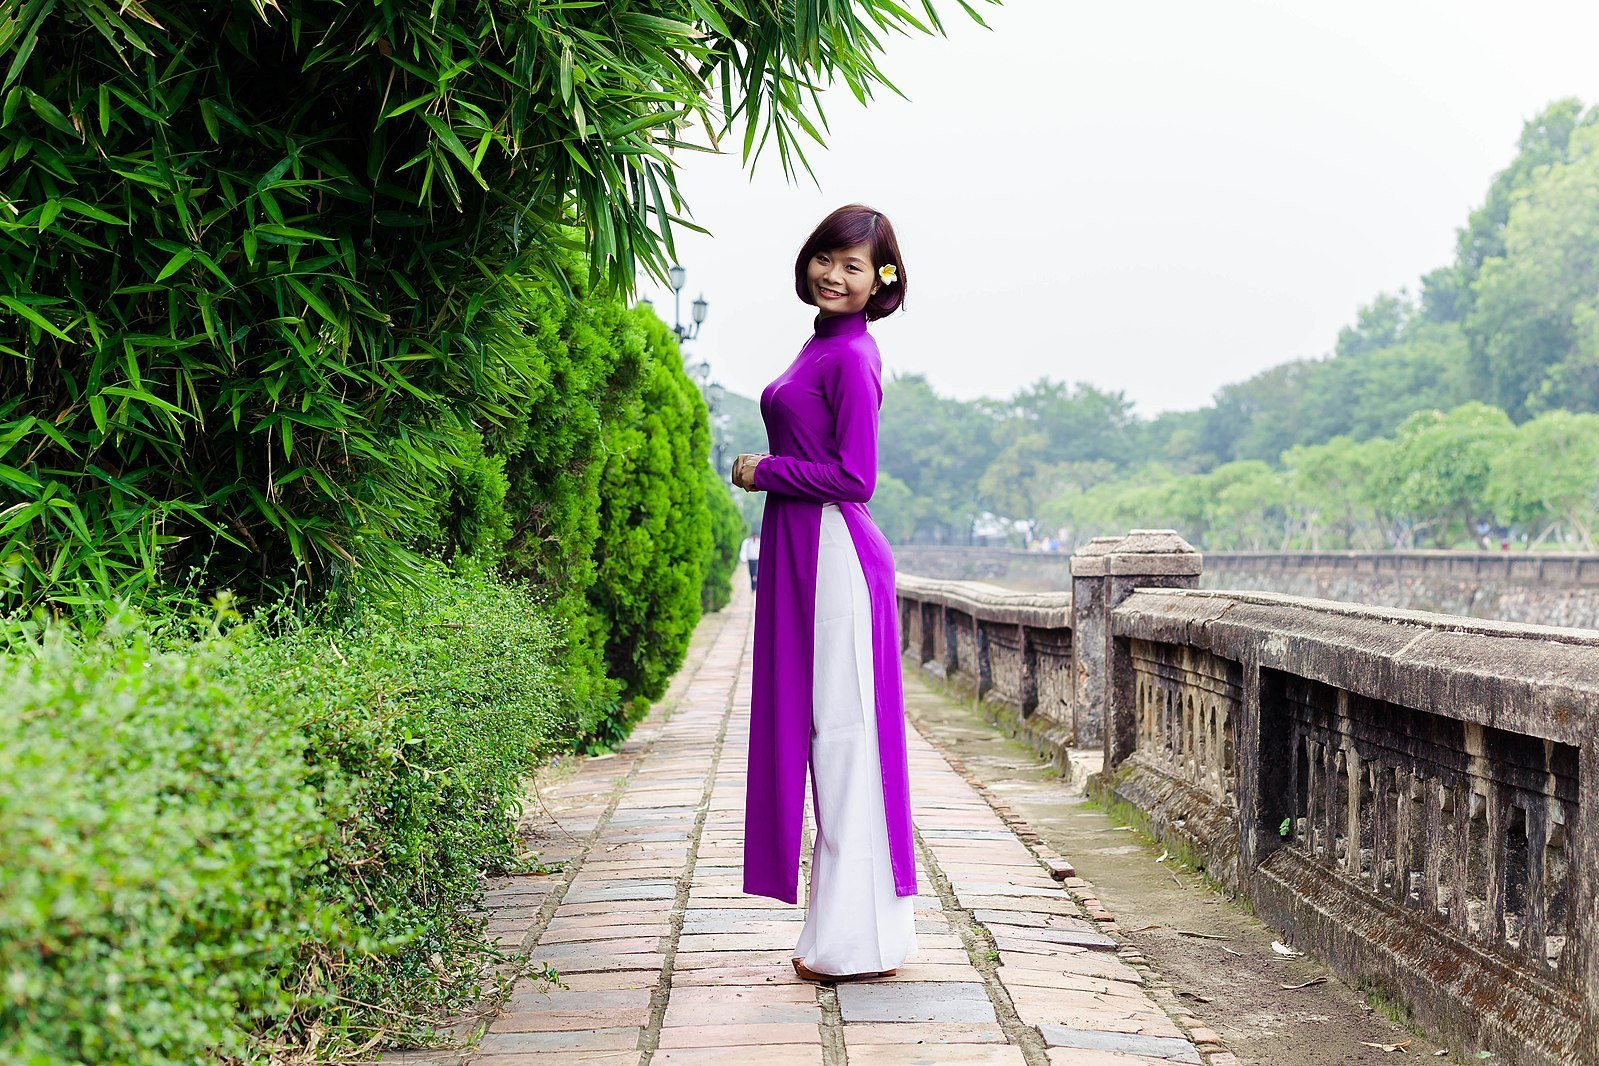 Image of a woman in a purple Ao Dai worn over white trousers